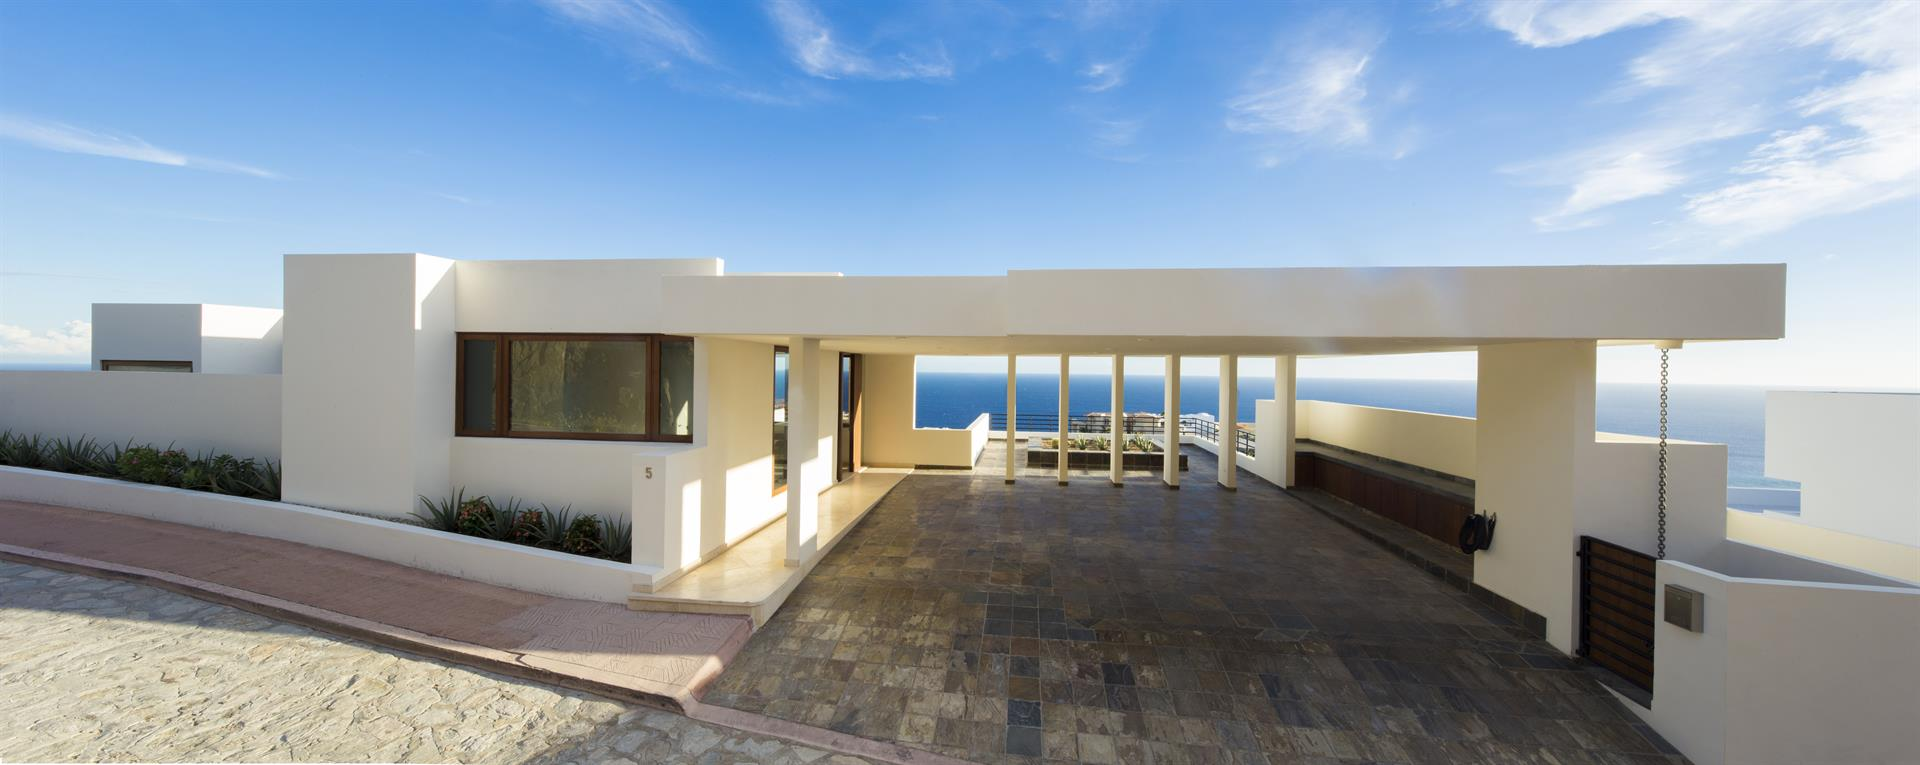 Additional photo for property listing at Ventana al Cielo  Cabo San Lucas, Baja California Sur,23453 Mexiko